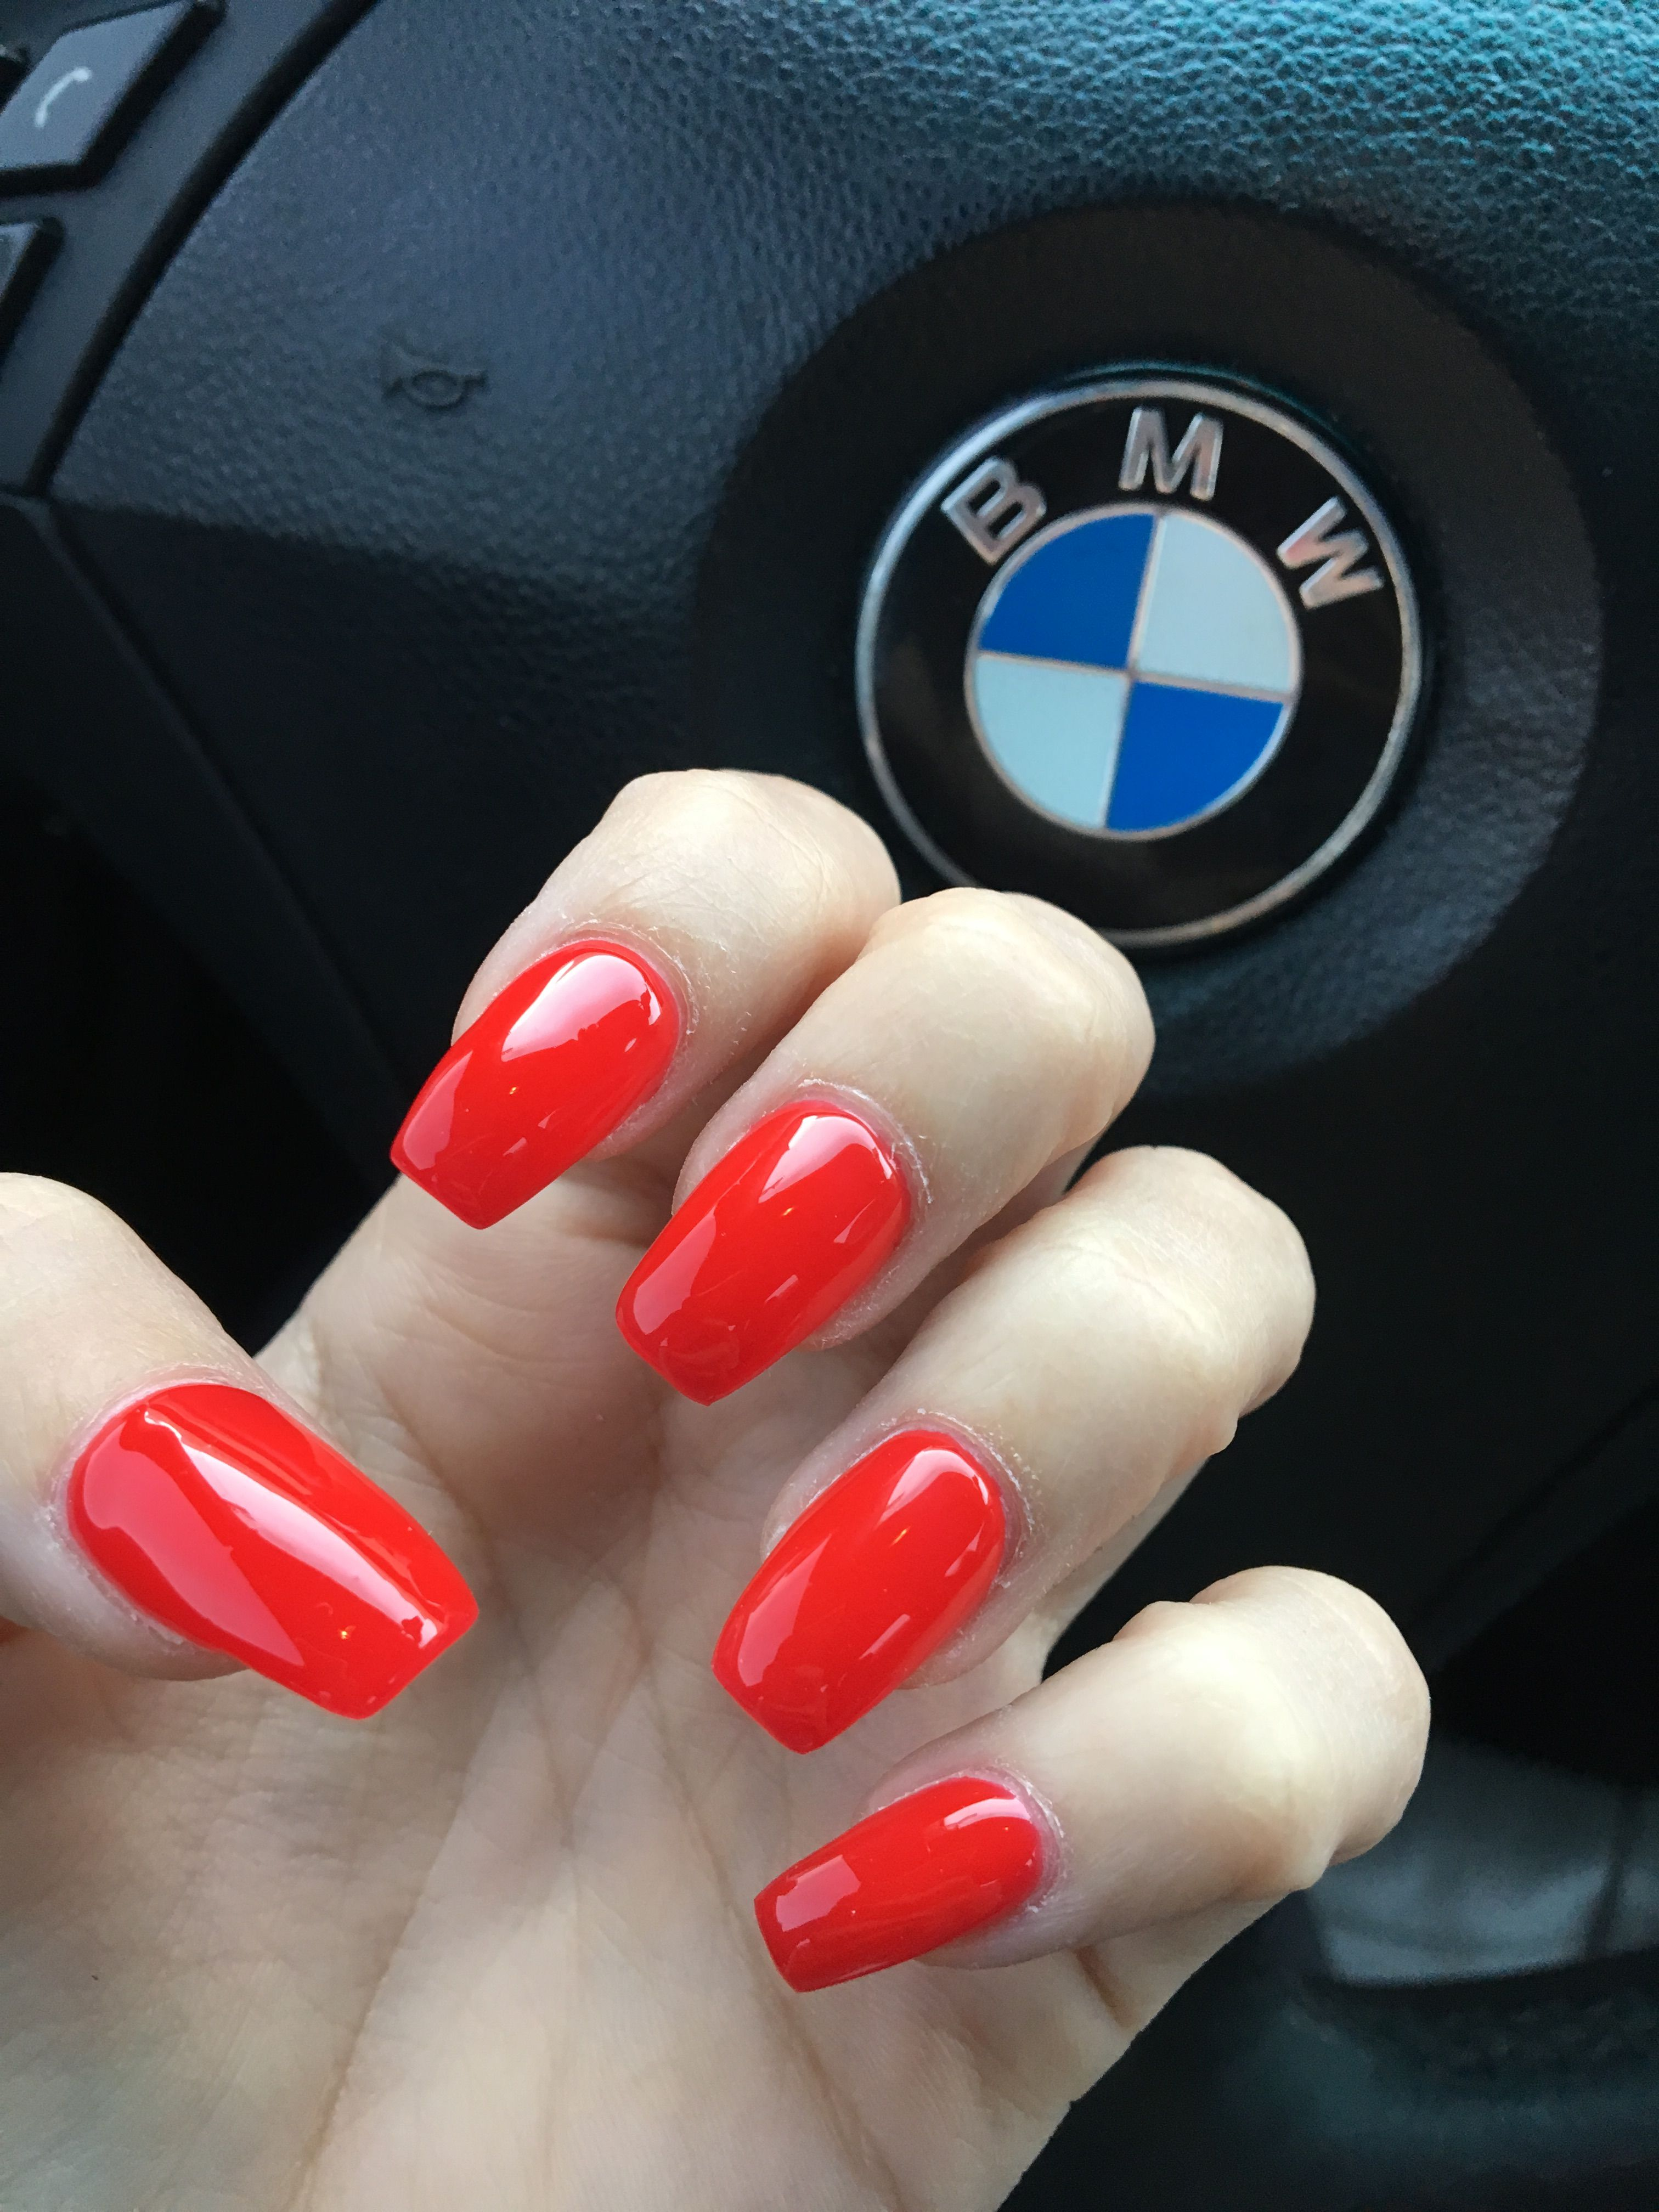 Ferrari Red Coffin Nails 12 23 16 Coffin Shape Nails Nails Hot